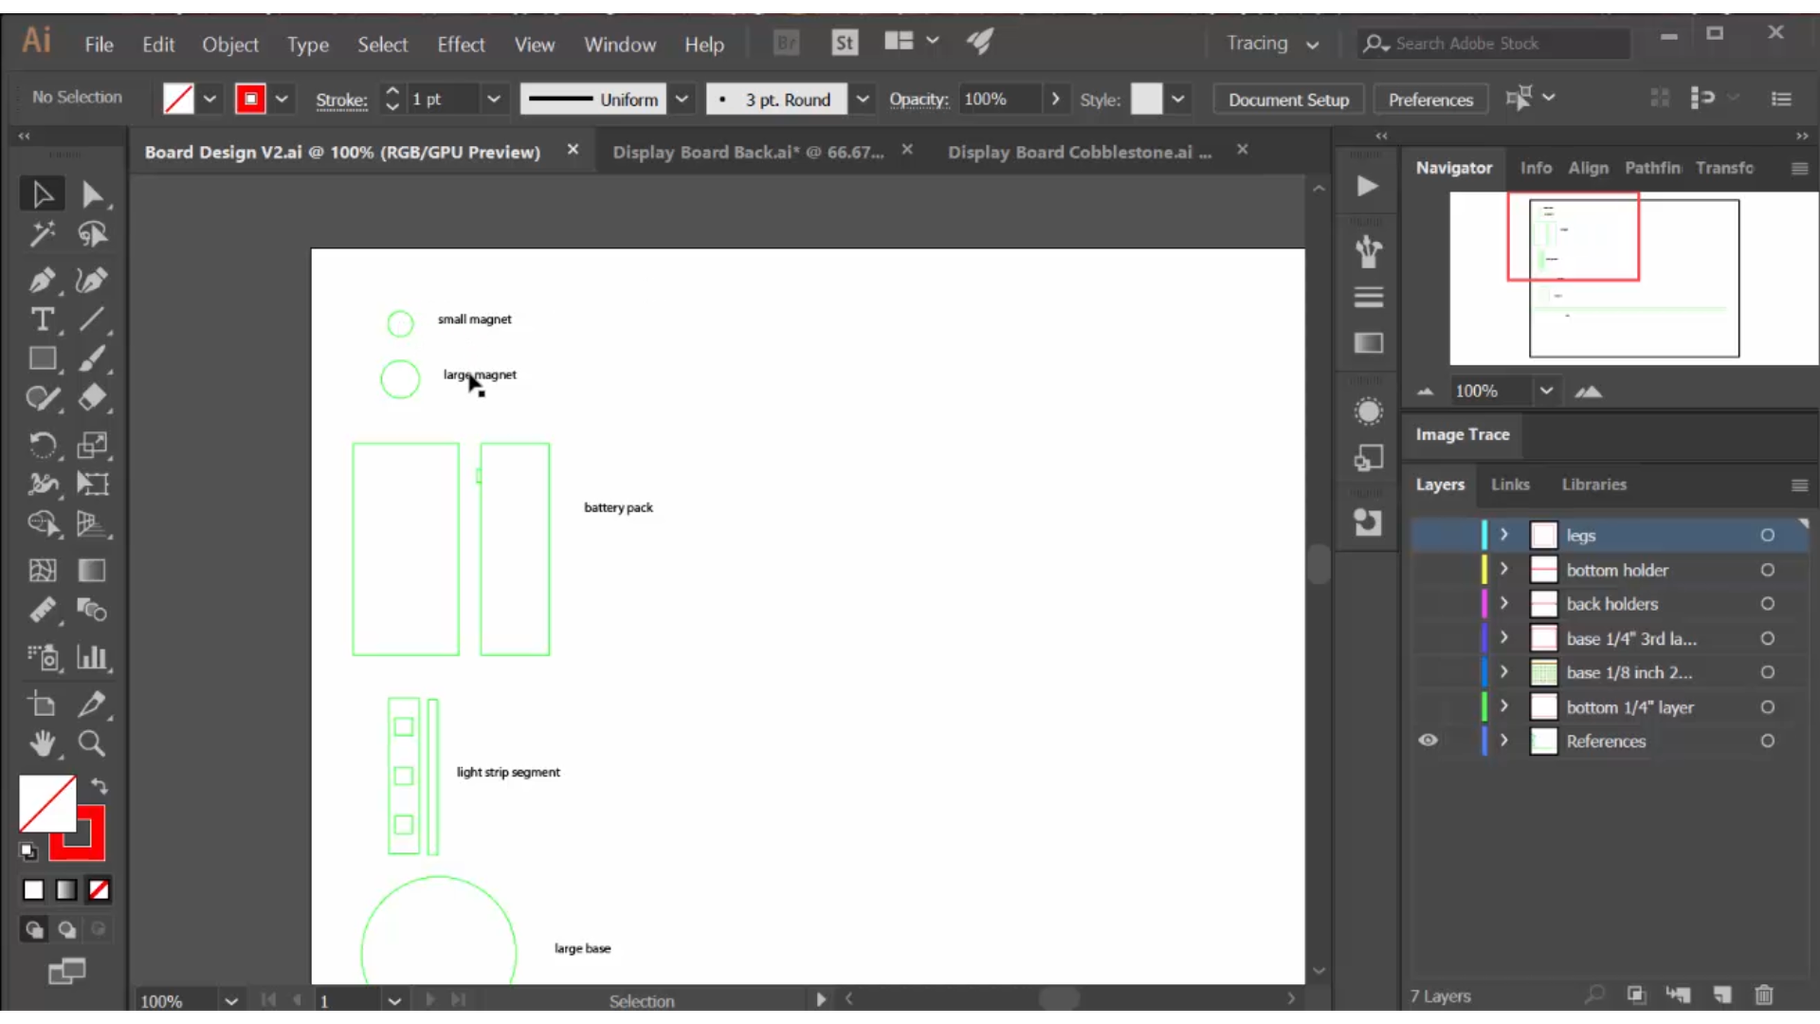 Design the Display Board Components